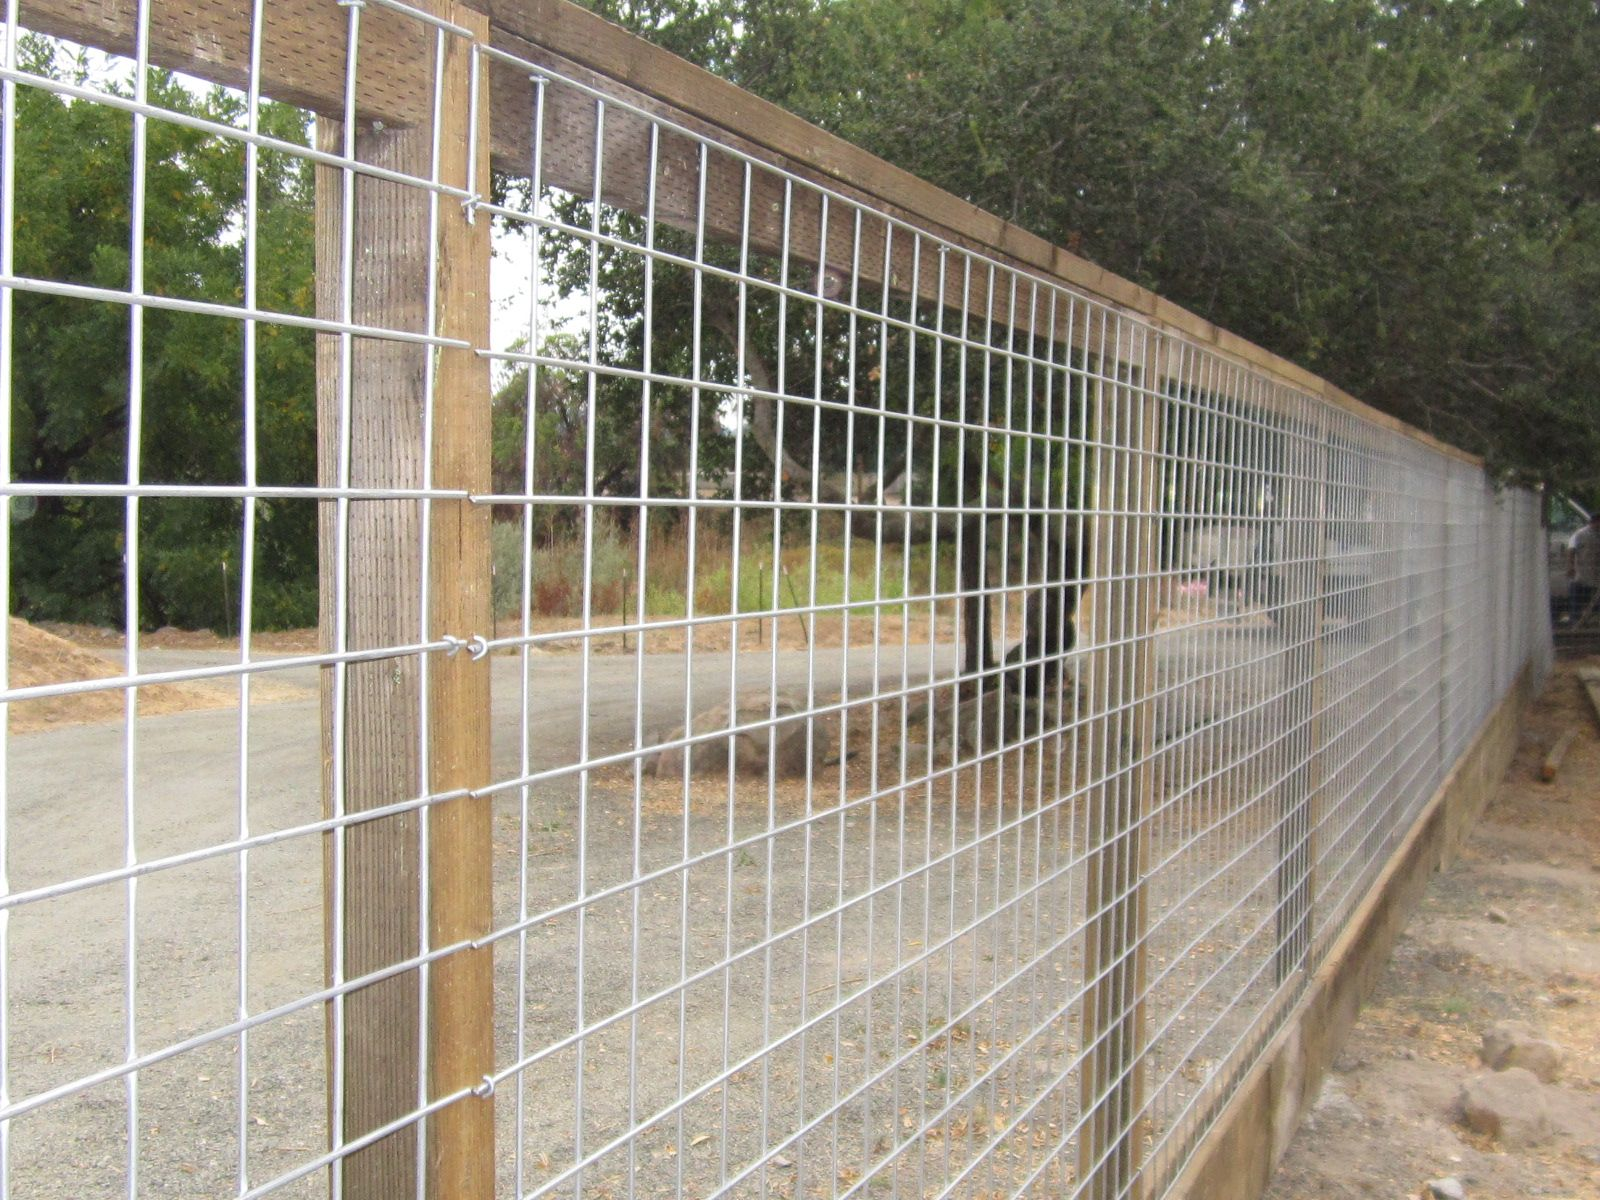 4x4 hog panel mesh on 4x4 posts and kickboard by arbor fence inc